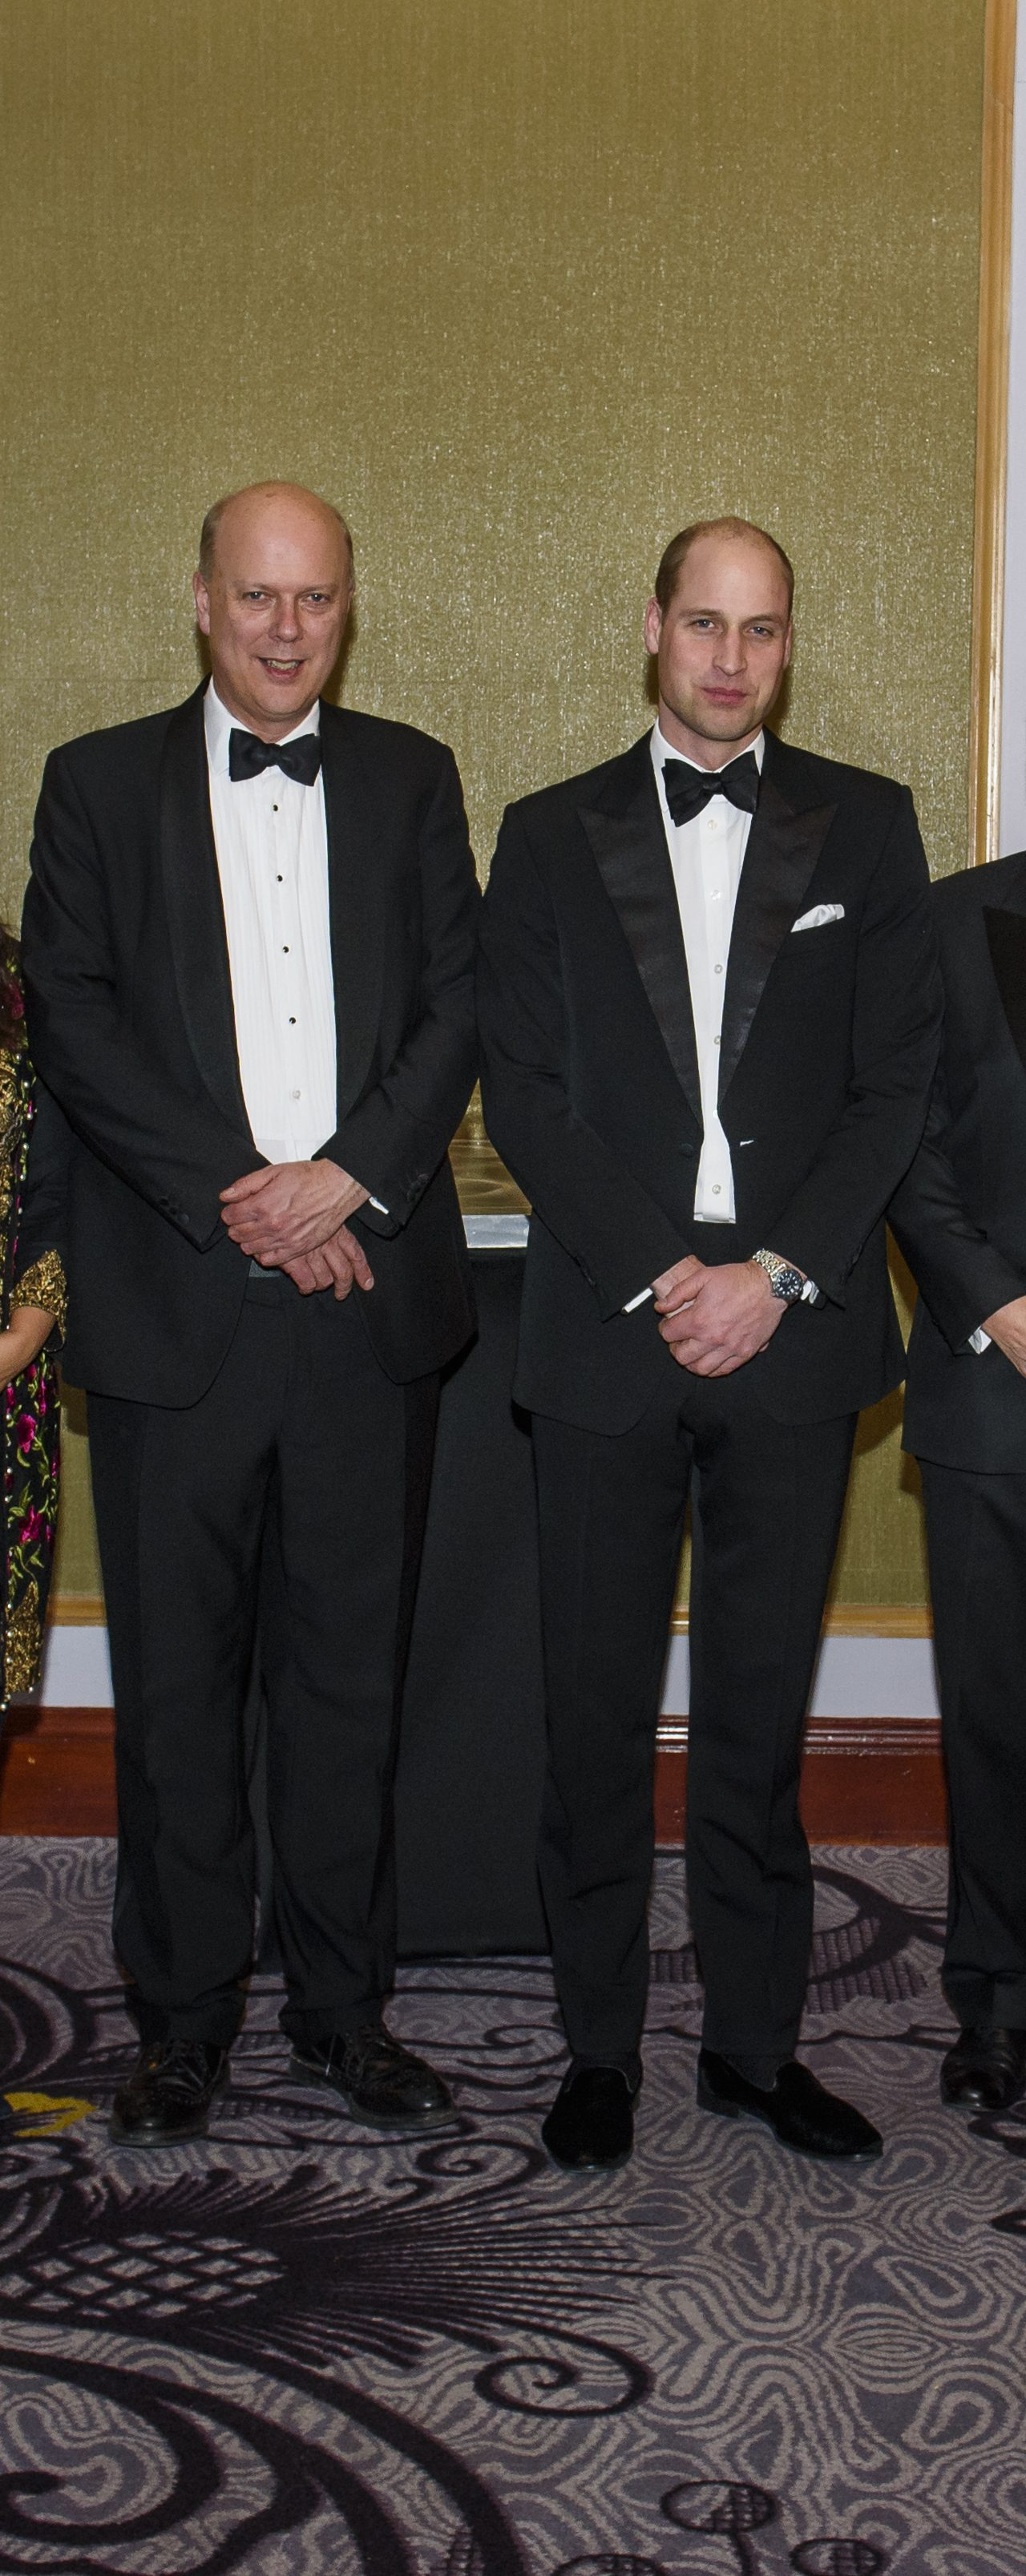 The Duke of Cambridge attends the UK Chamber of Shipping Annual Dinner